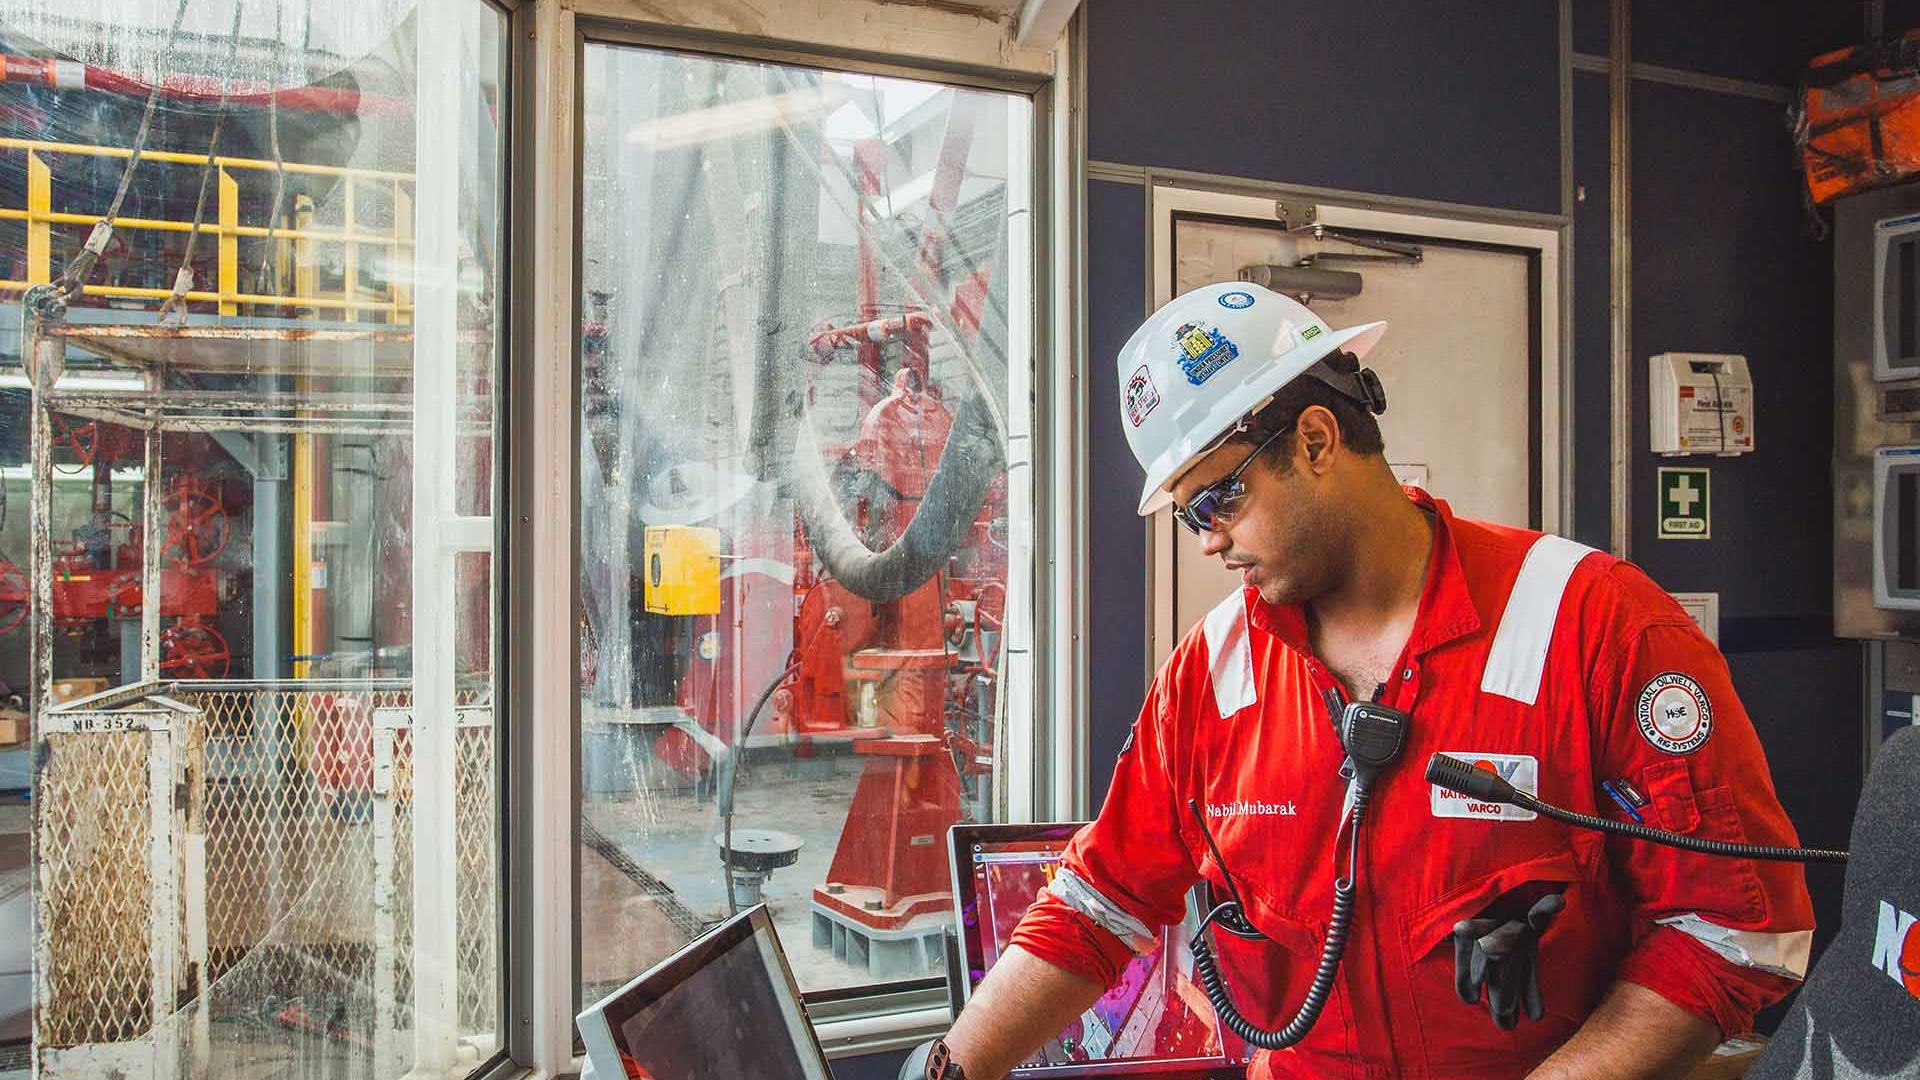 Offshore driller's cabin and NOV control station touchscreens